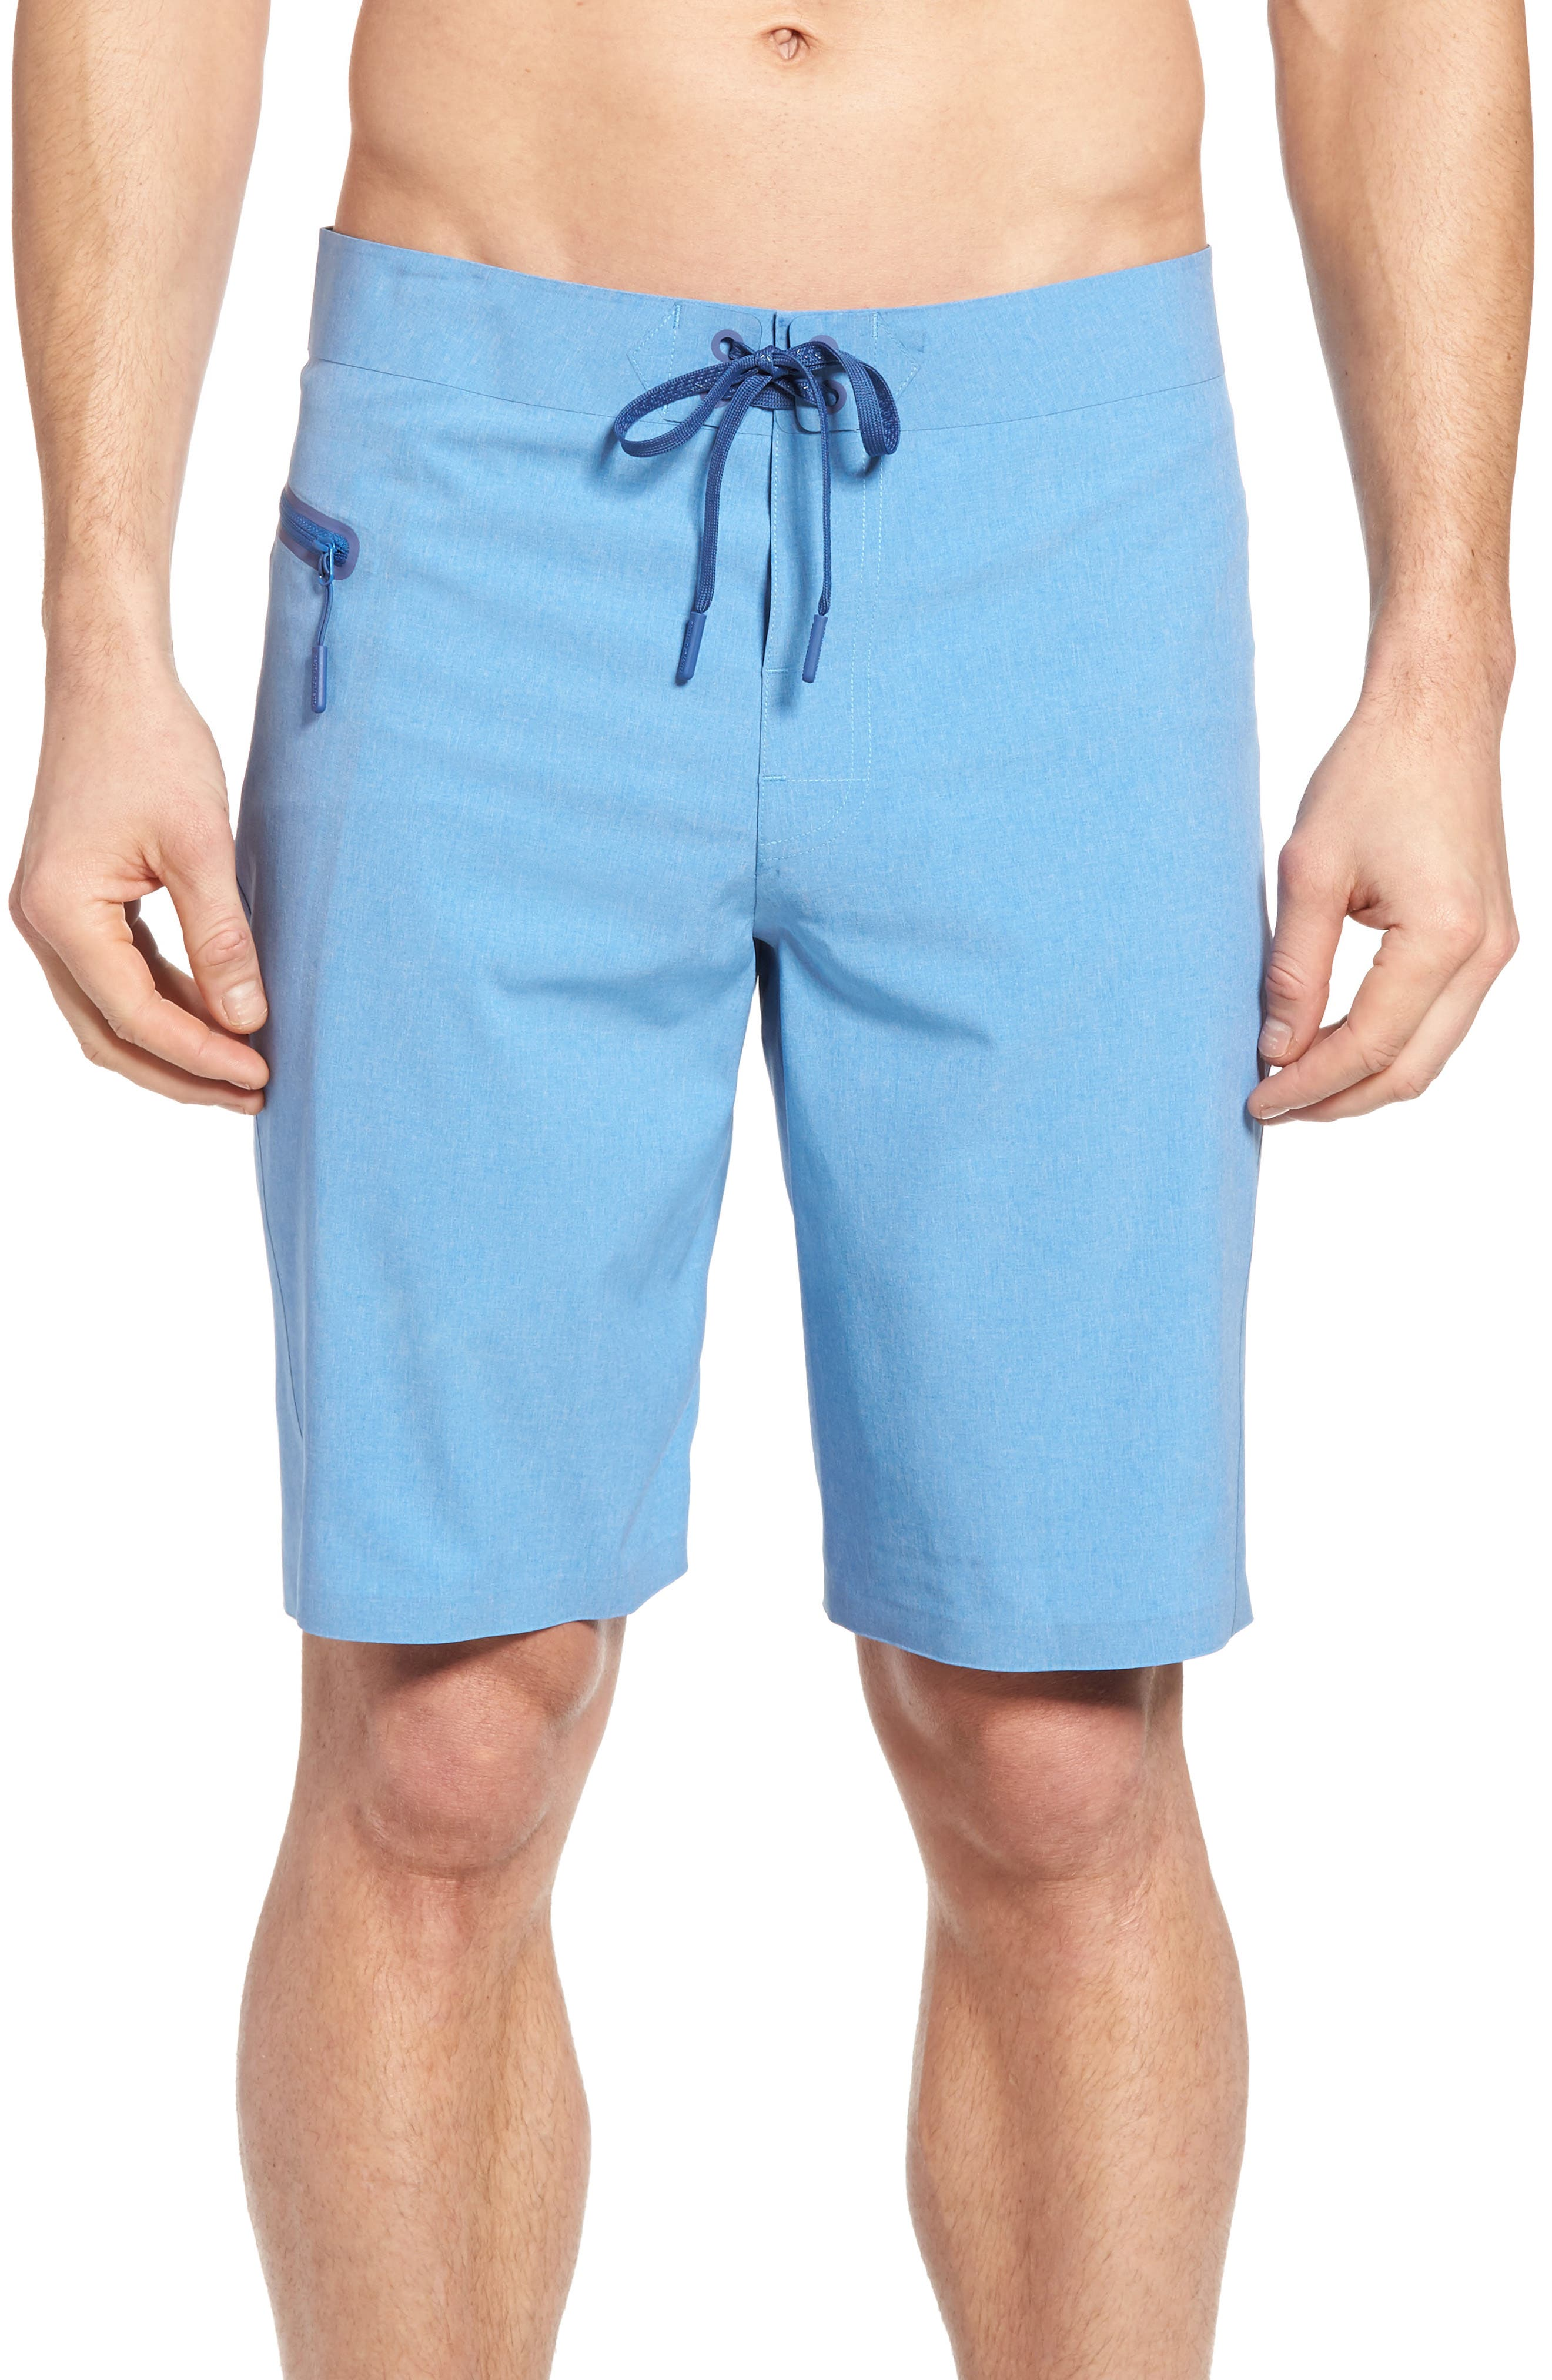 Heather Stretch Board Shorts,                             Main thumbnail 3, color,